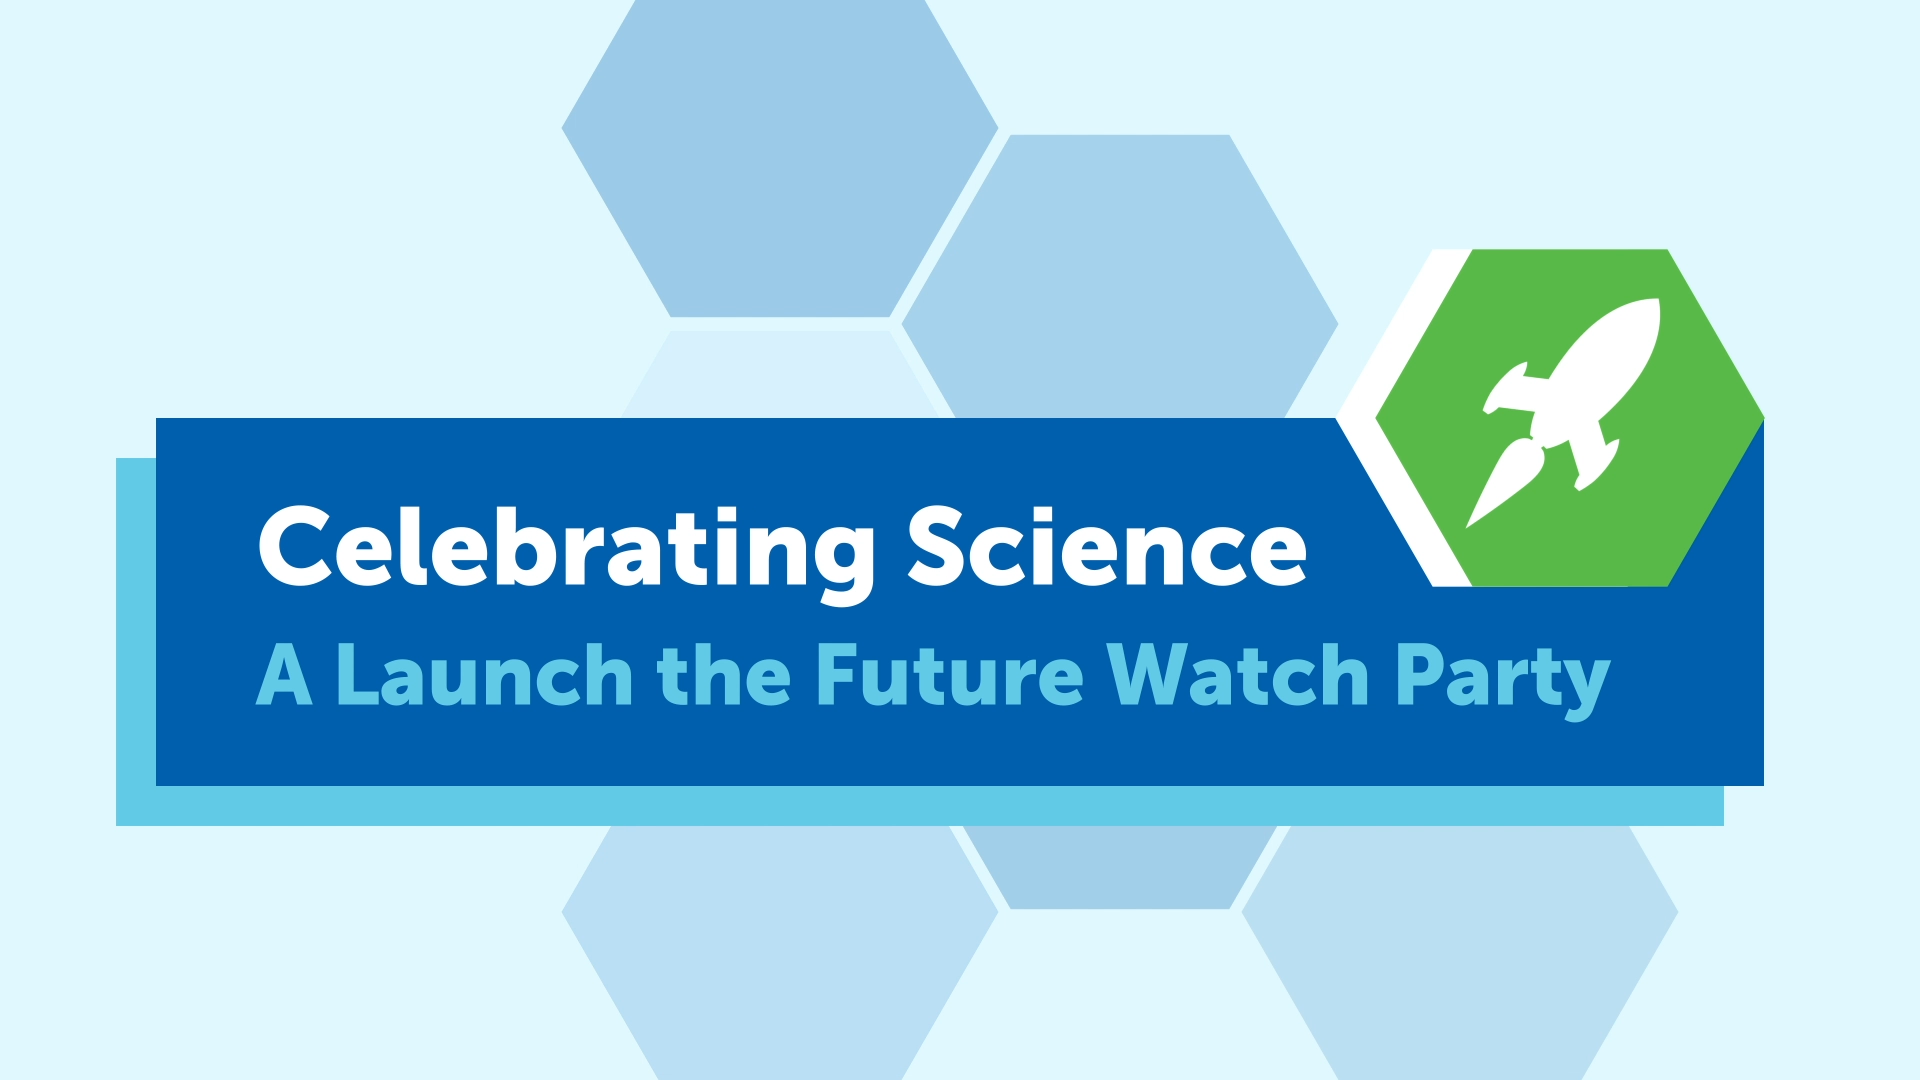 Celebrating Science: A Launch the Future Watch Party